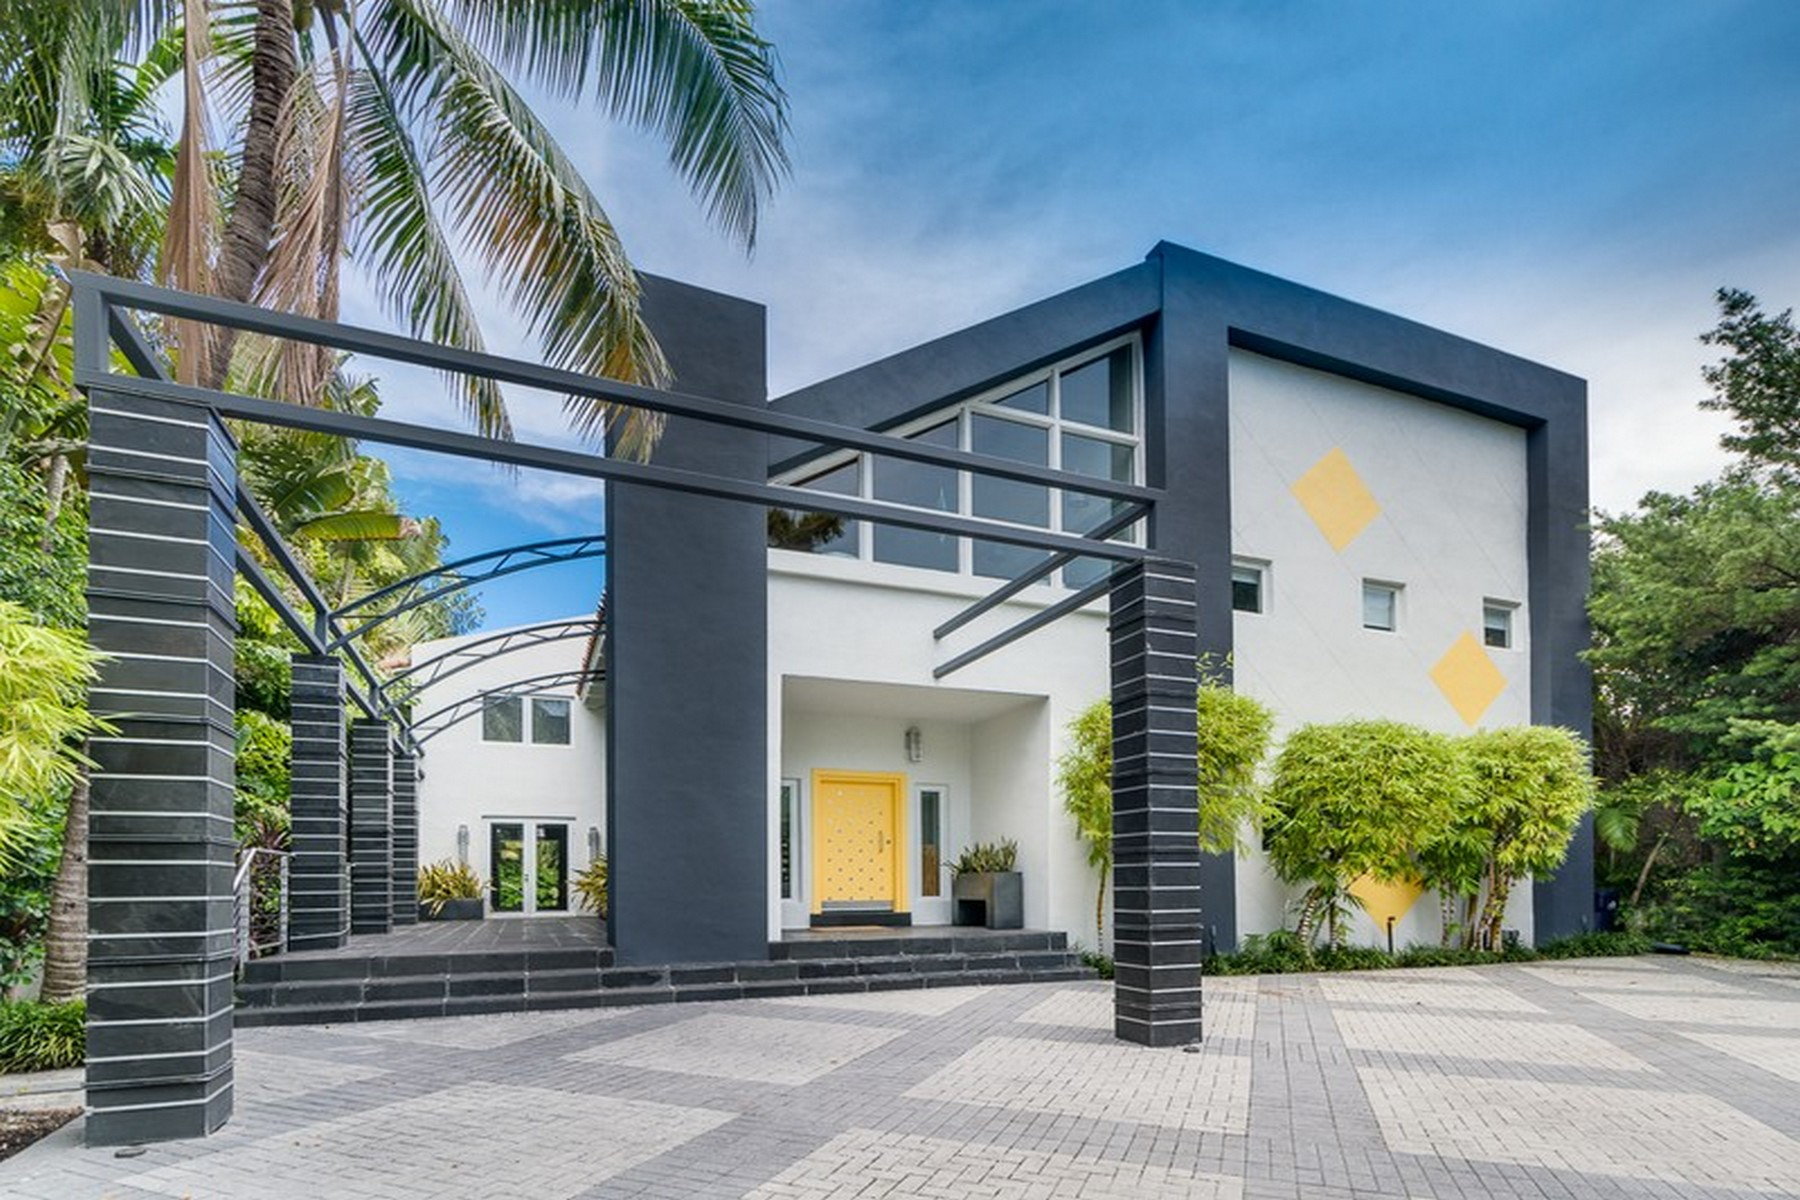 Single Family Home for Sale at 1833 W 24 ST Miami Beach, Florida, 33140 United States